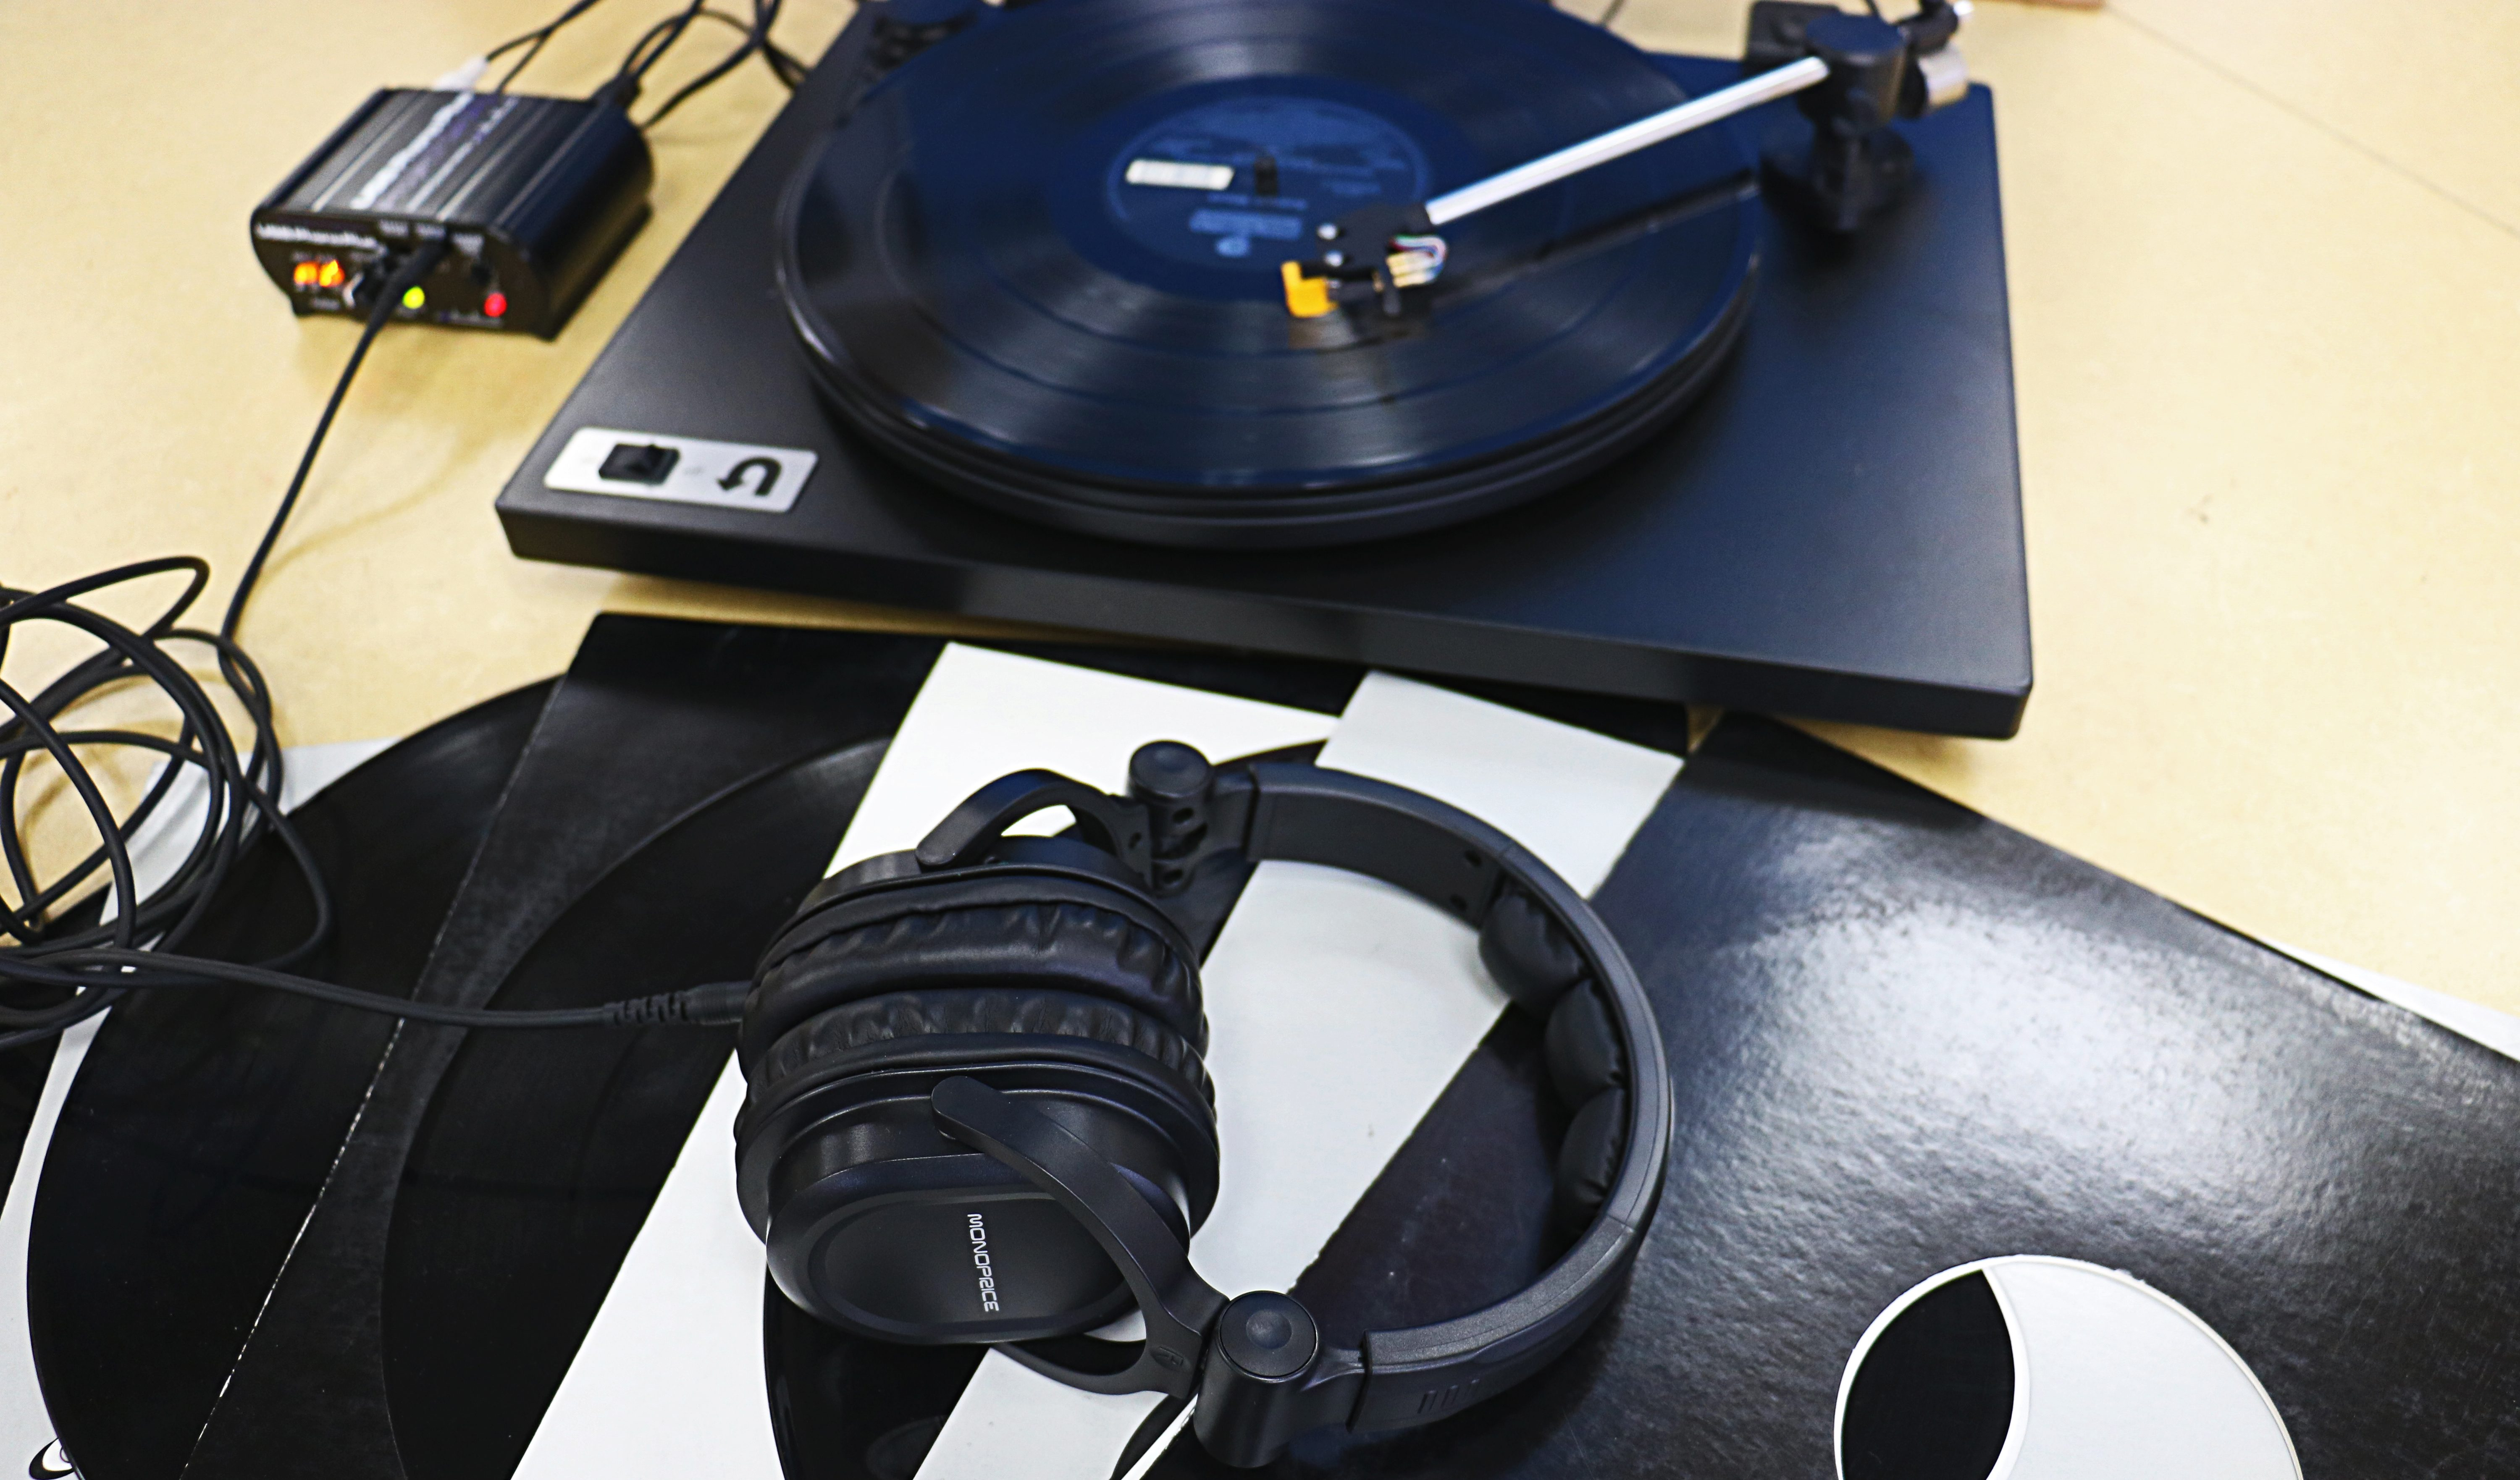 Turntable at the East Palo Alto Library.